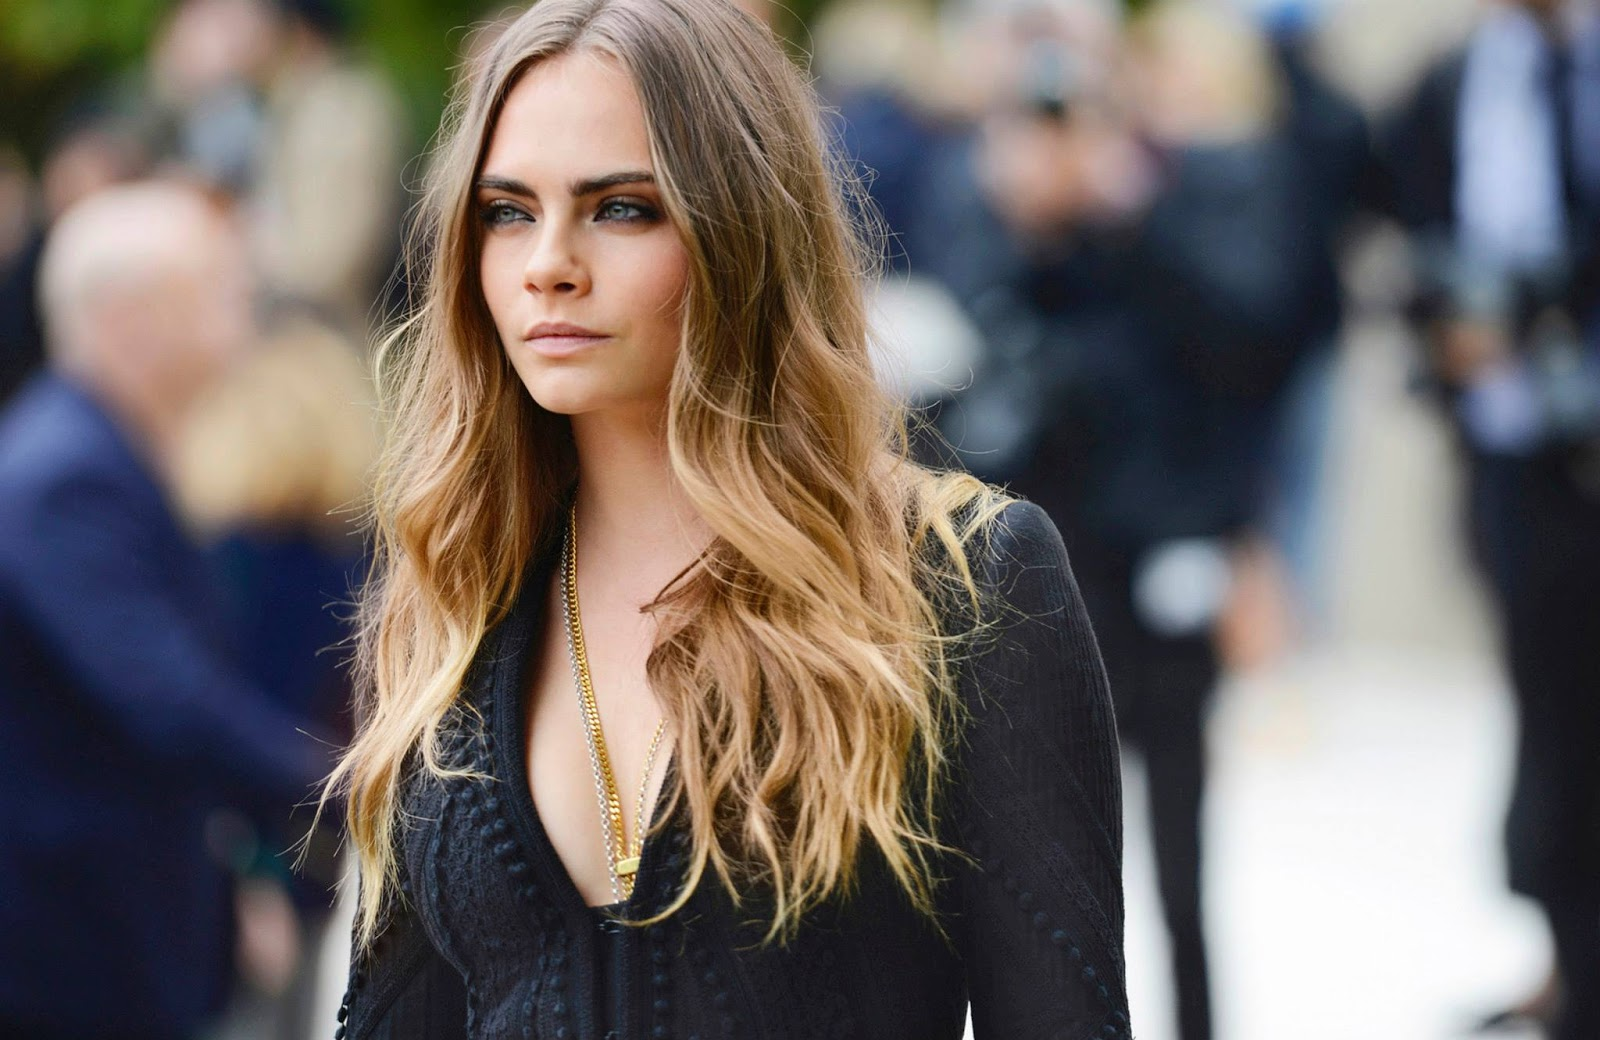 Cara Delevingne joins Kate Moss and Georgia Jagger as the new face of Rimmel